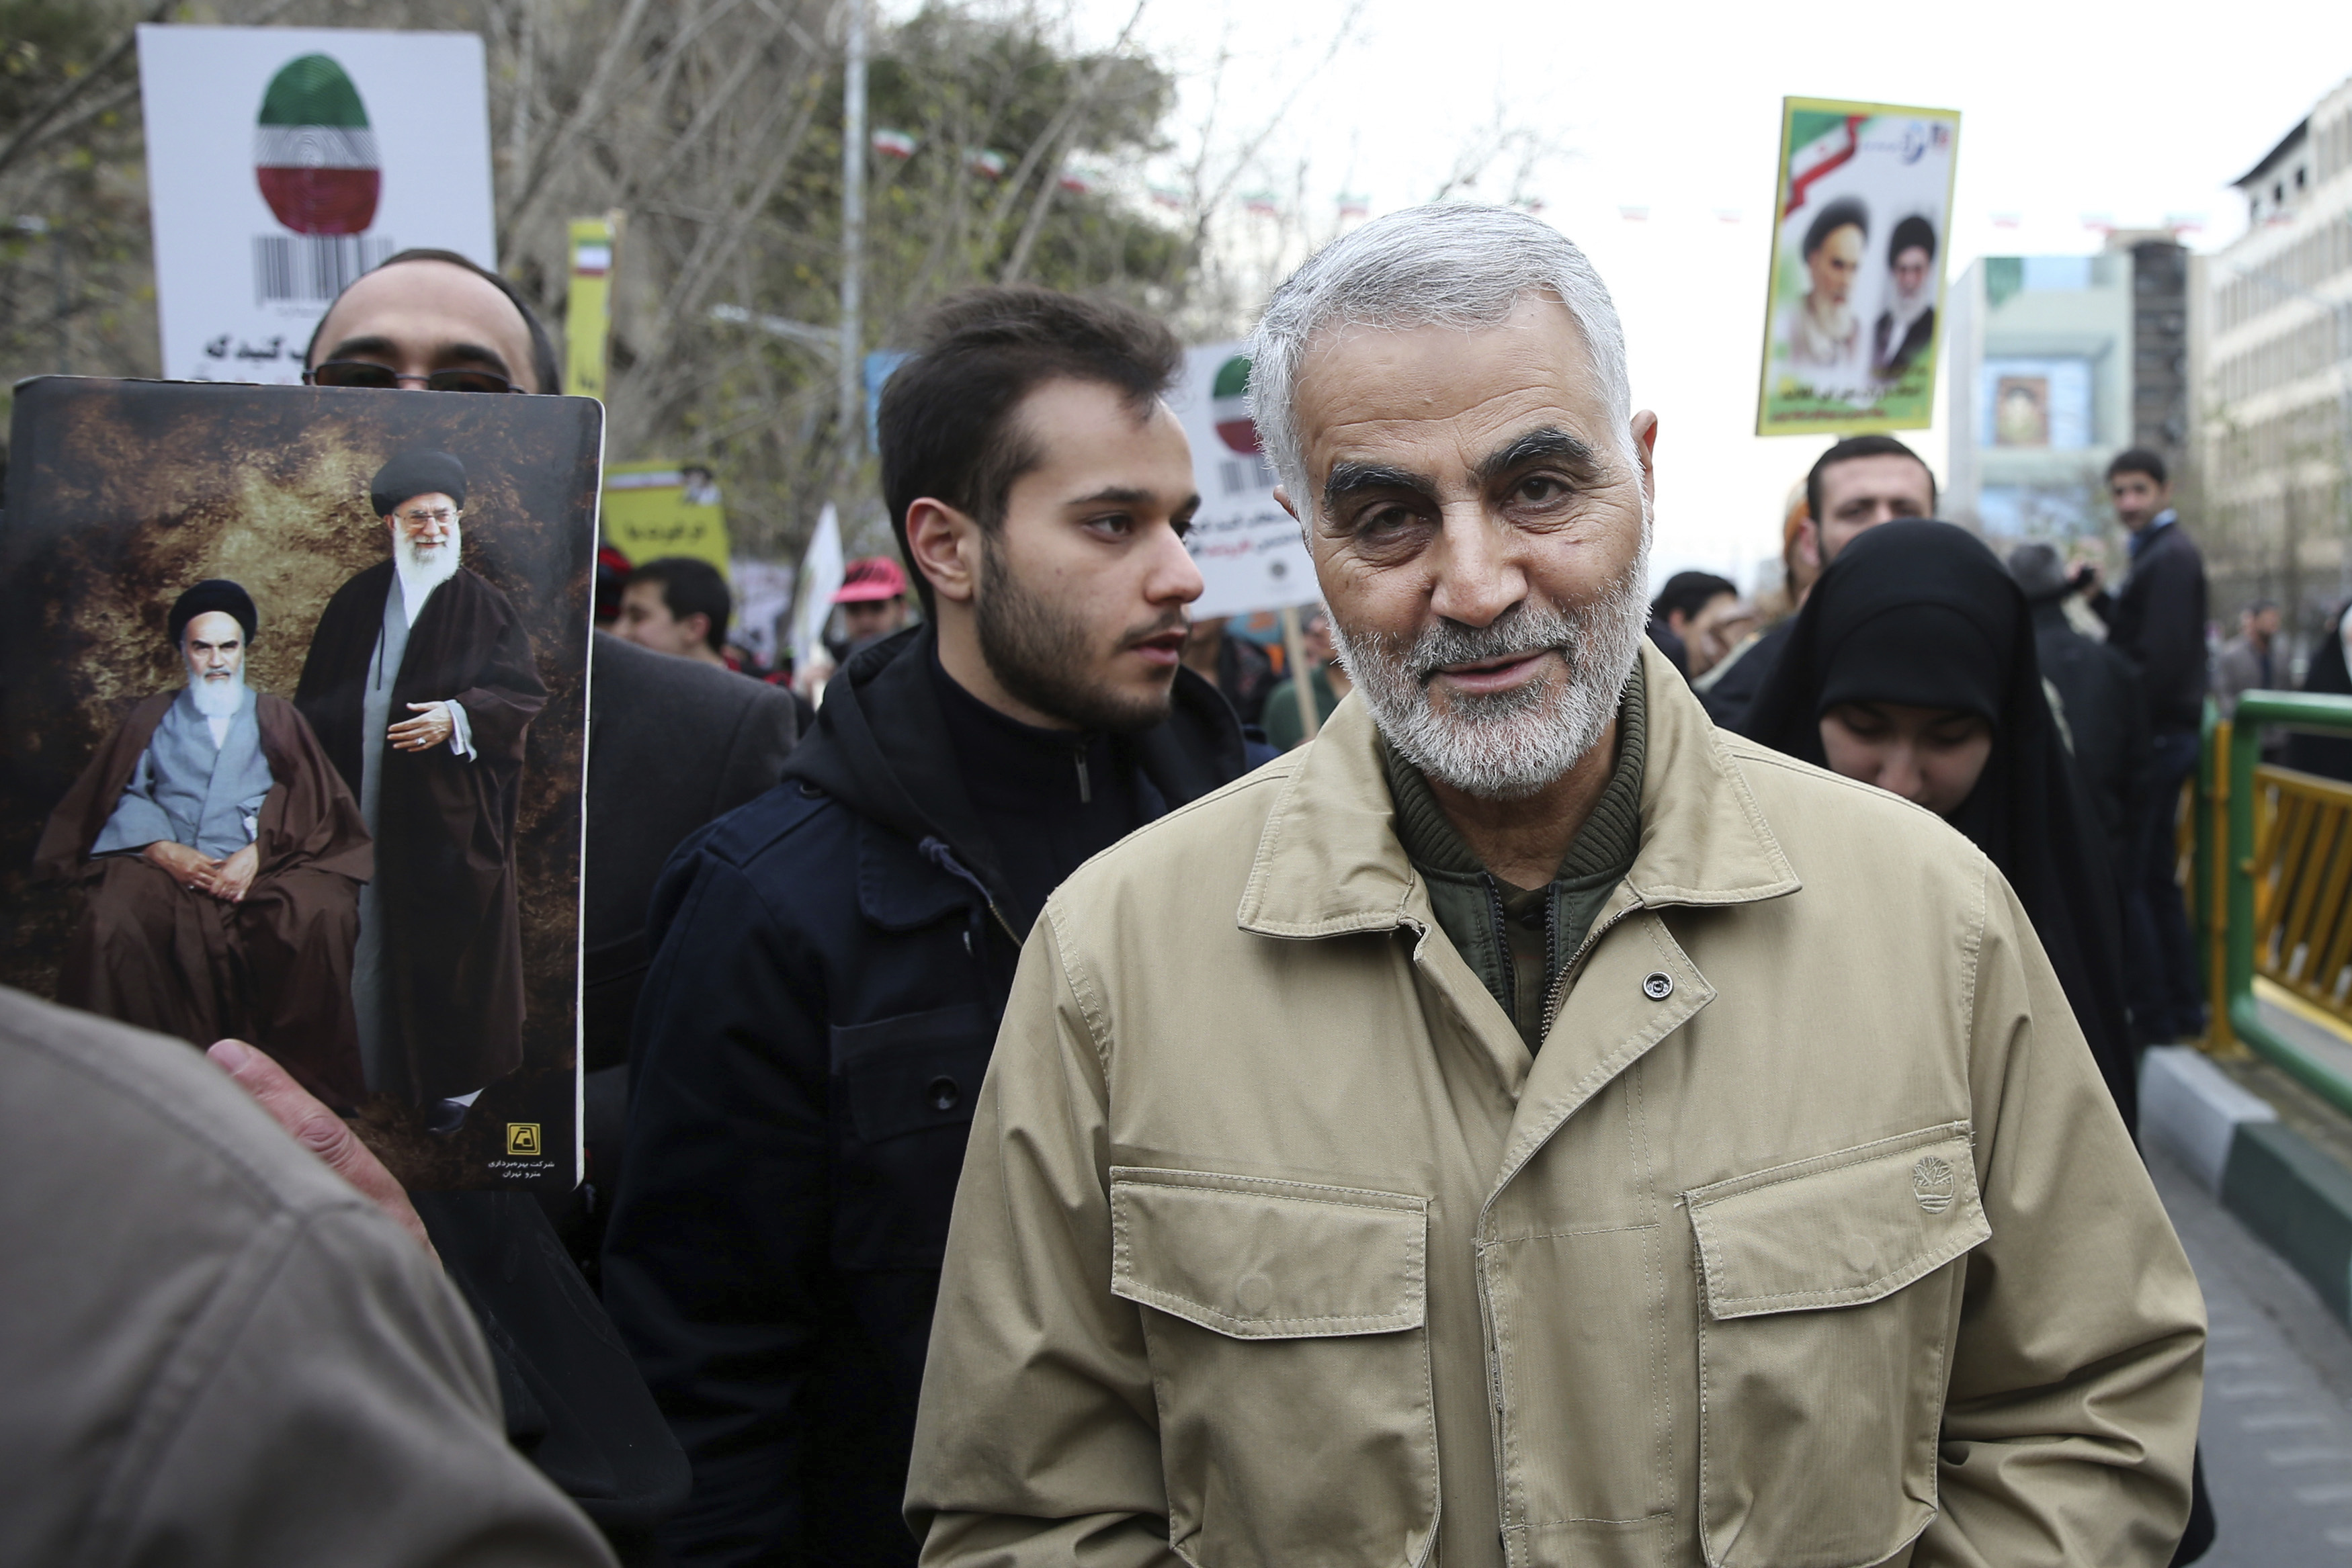 Iranian Revolutionary Guard Gen. Qassem Soleimani, who was killed in a U.S. military drone attack early on Friday morning.